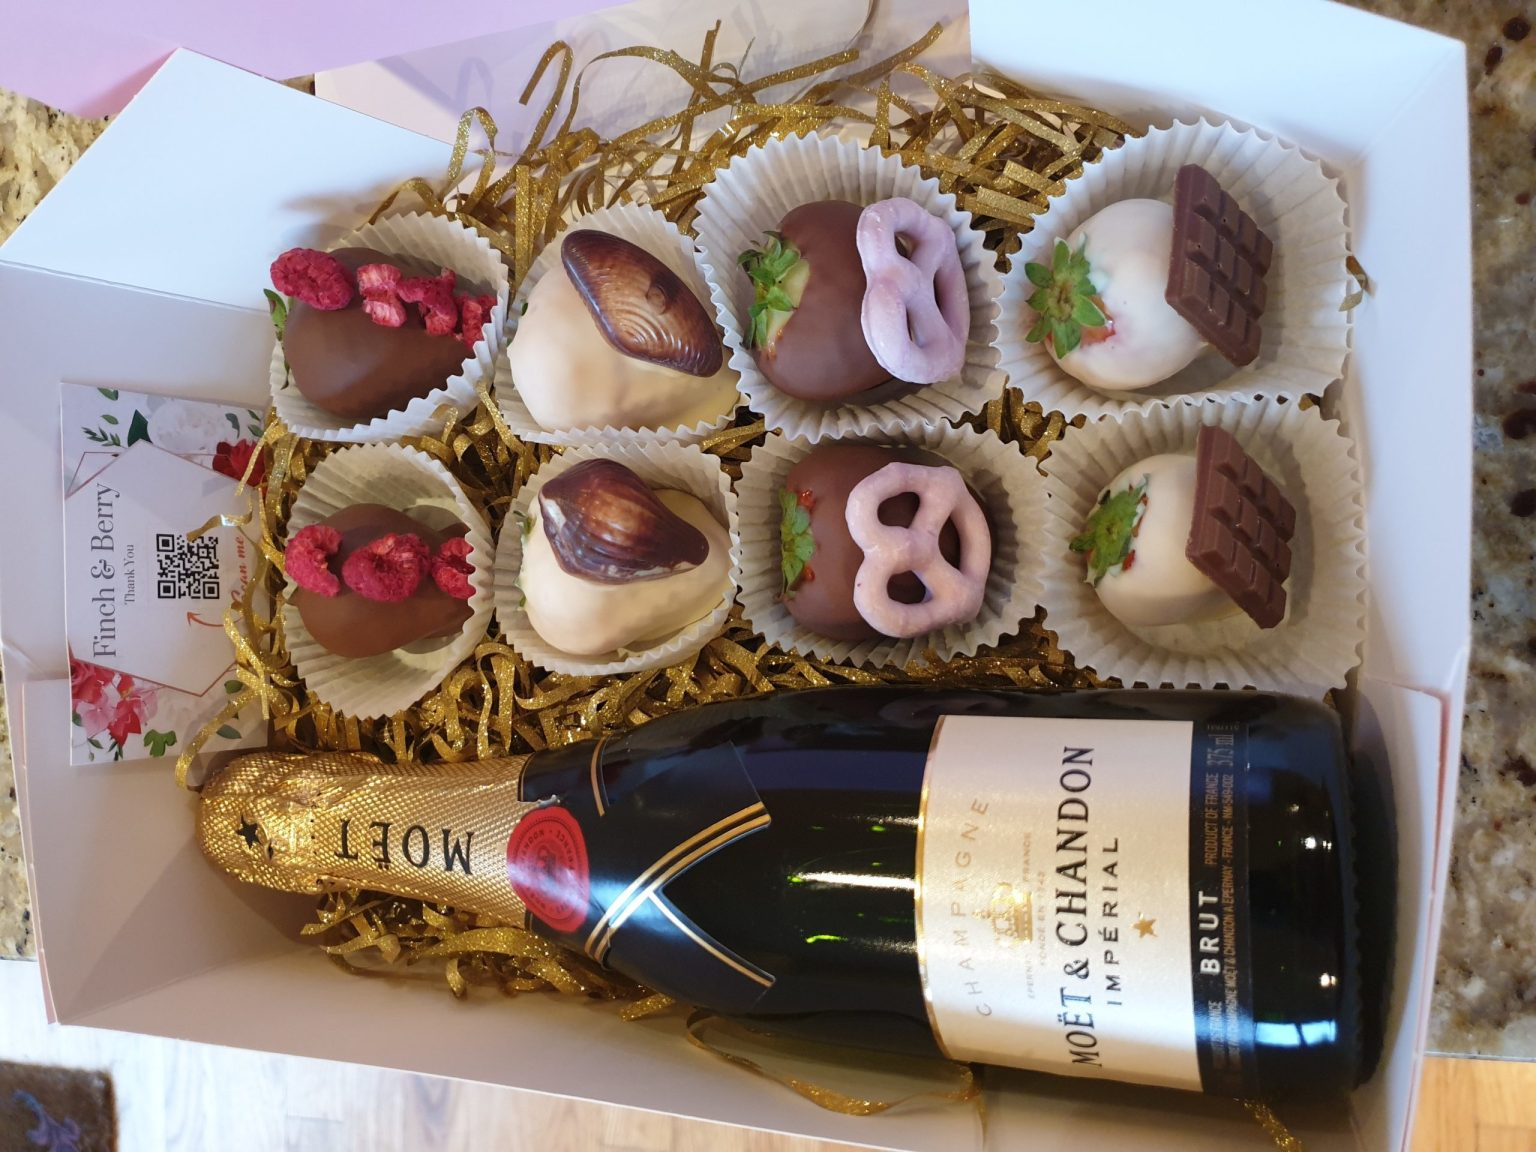 Win an Irish Handcrafted Bubbles and Berries hamper from Finch and Berry